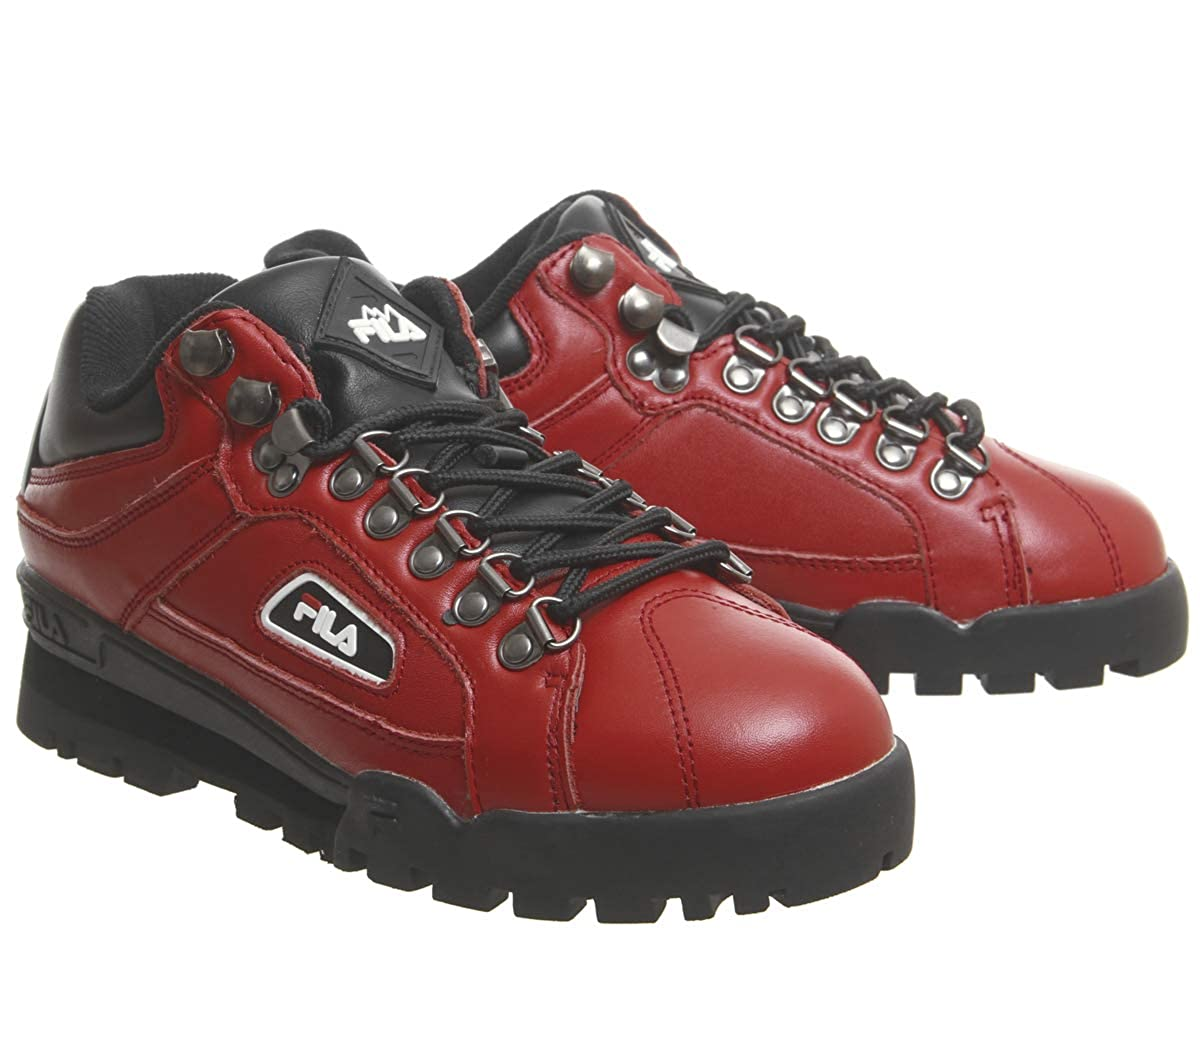 62524e6160449 Amazon.com: Fila Pompein Red Trailblazer Sneakers: Shoes